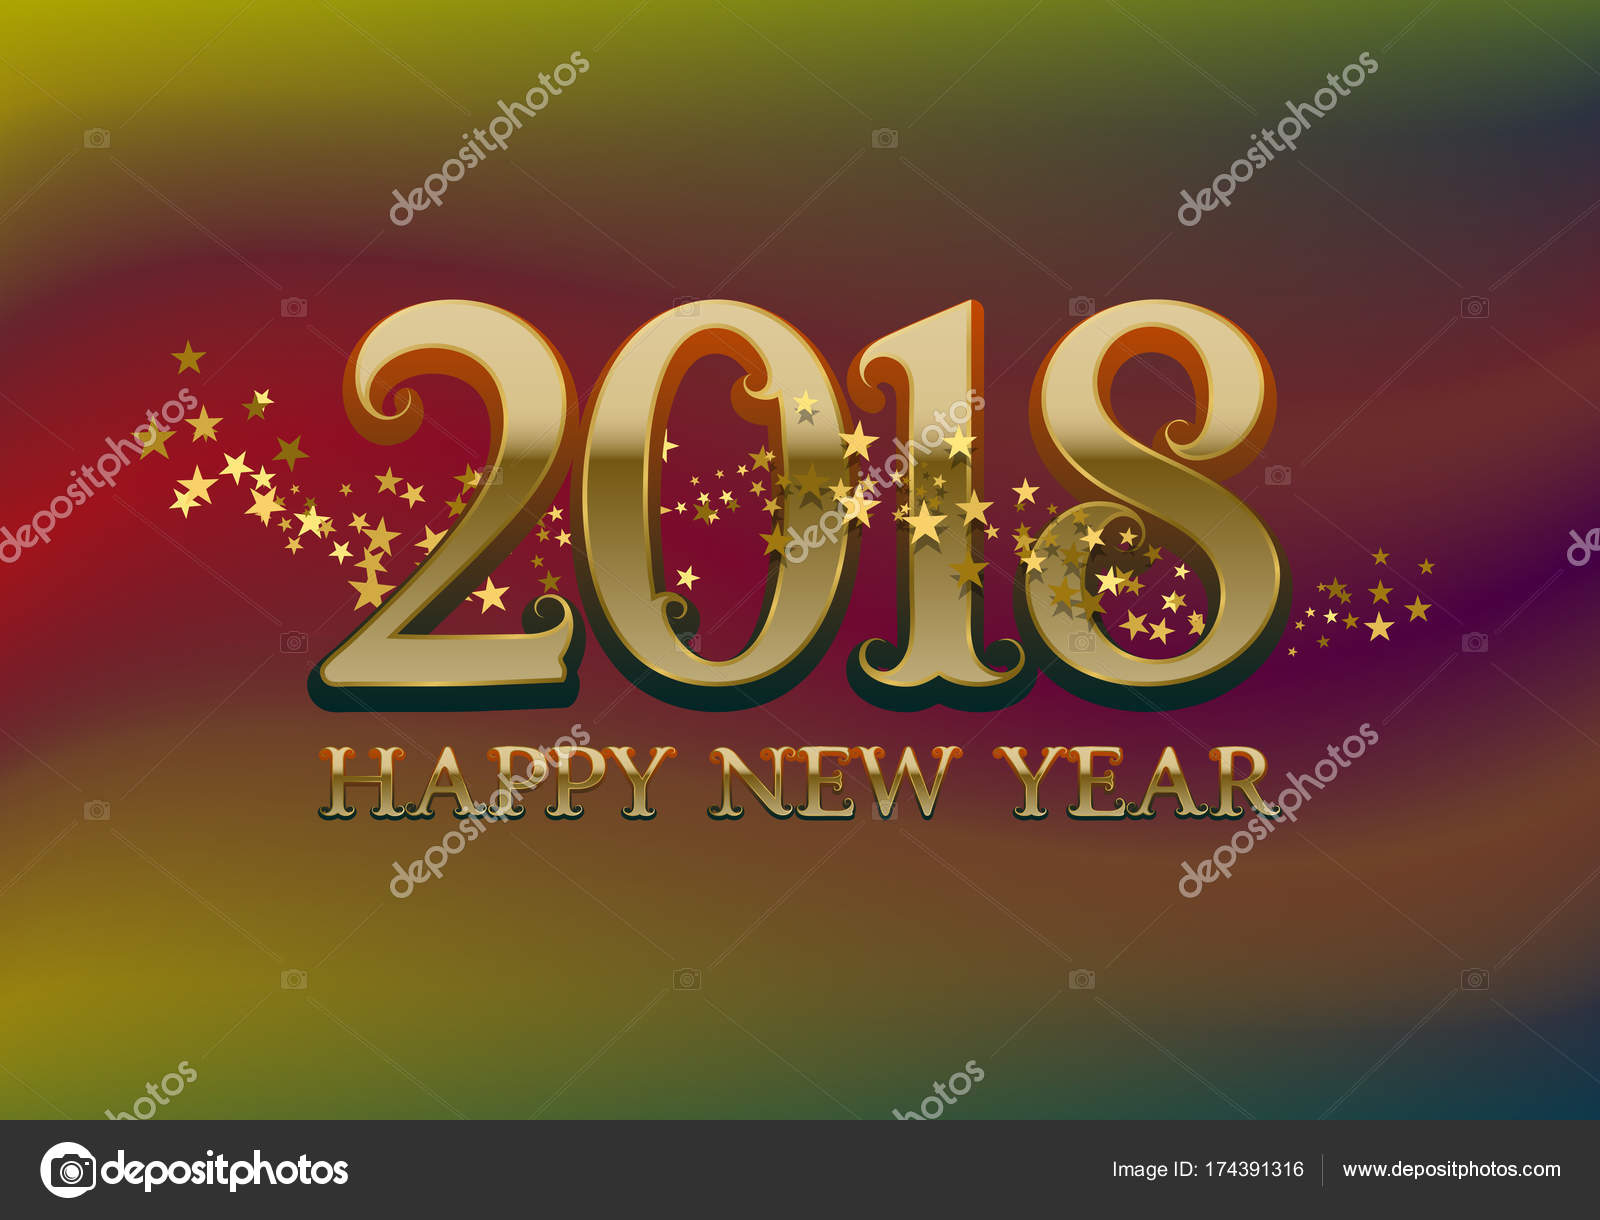 2018 Happy New Year Greeting Card Template On Colorful Blended